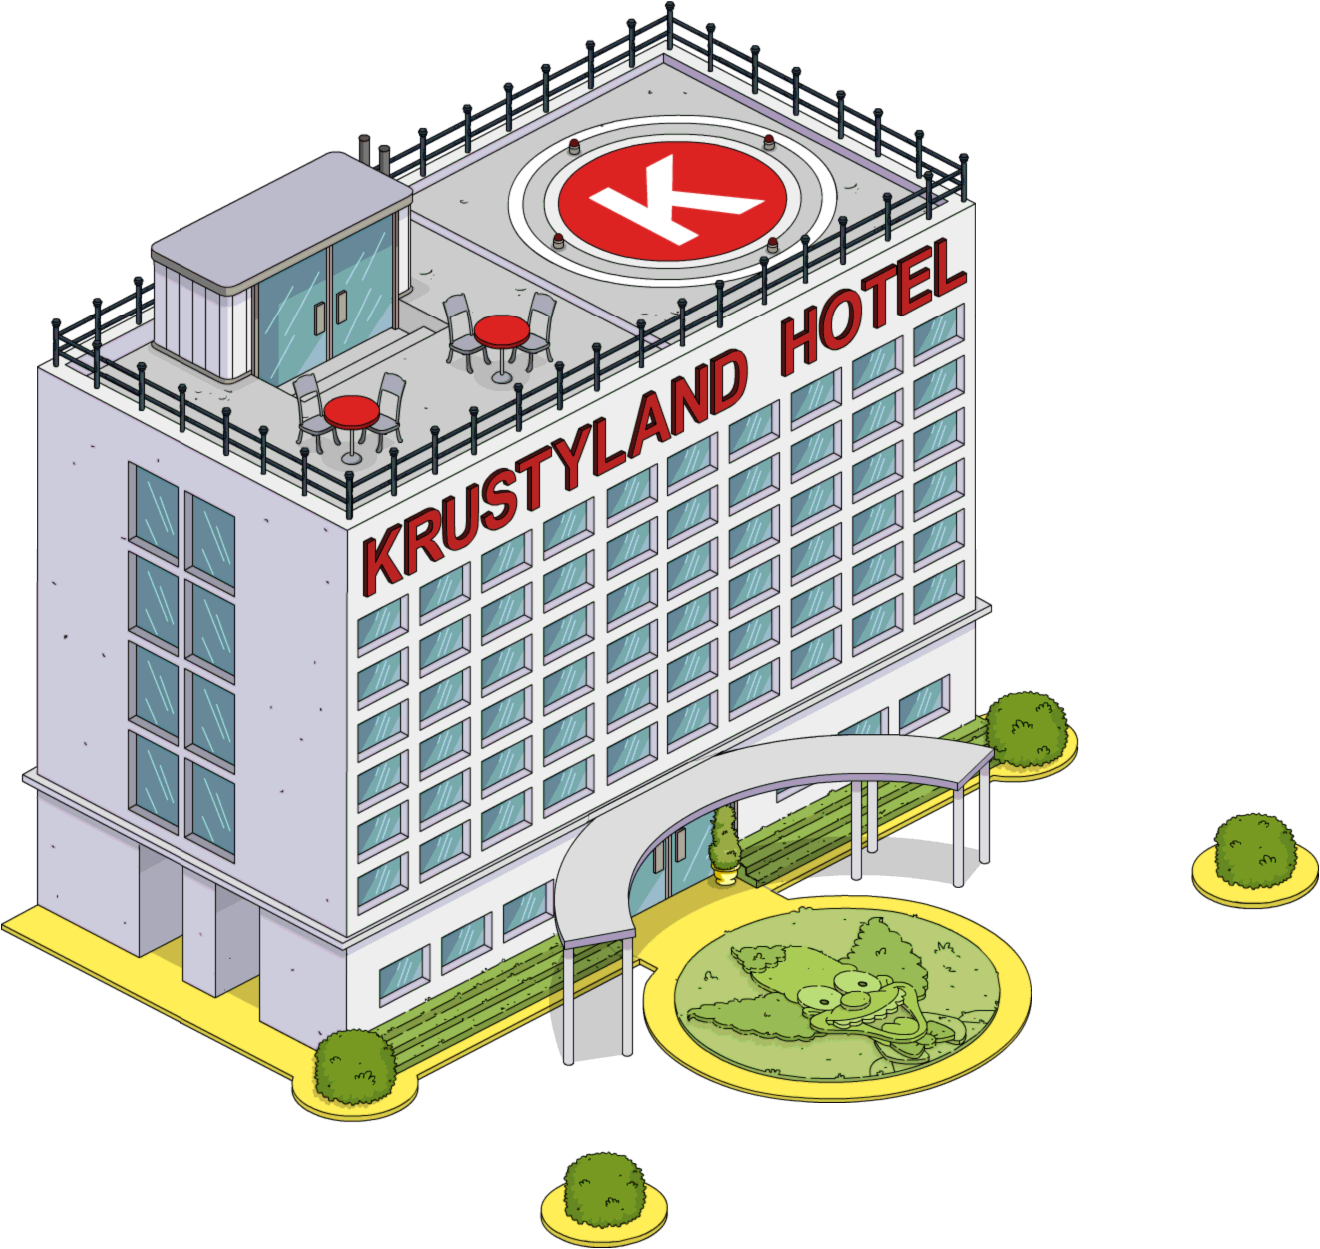 Tapped Out Krustyland Hotel.png